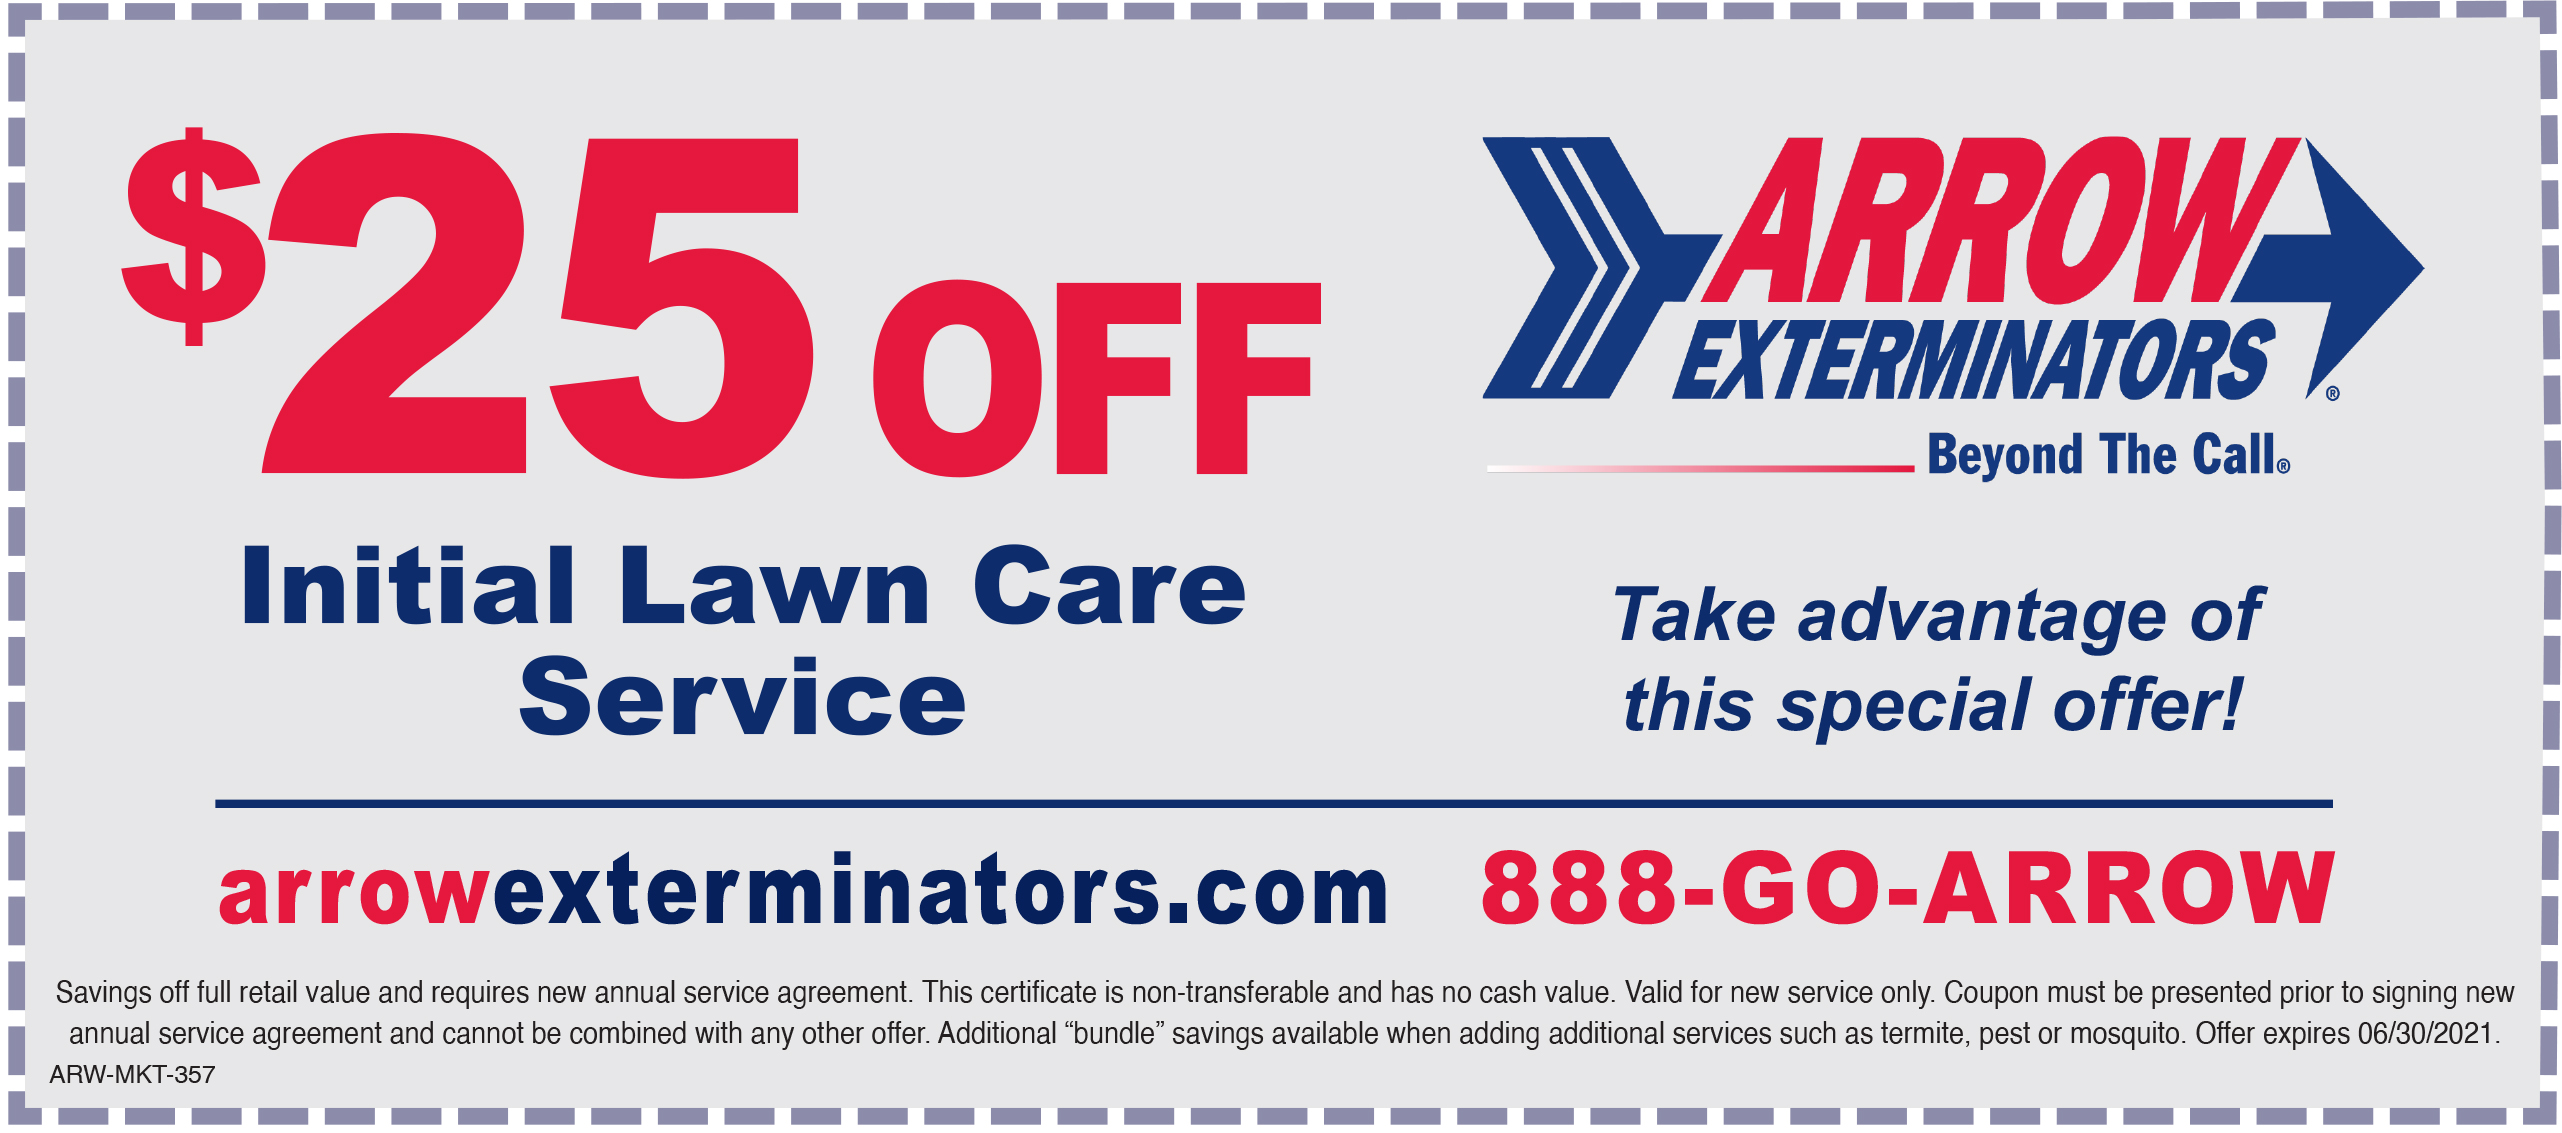 coupon-lawn_final_arrow_2021.jpg